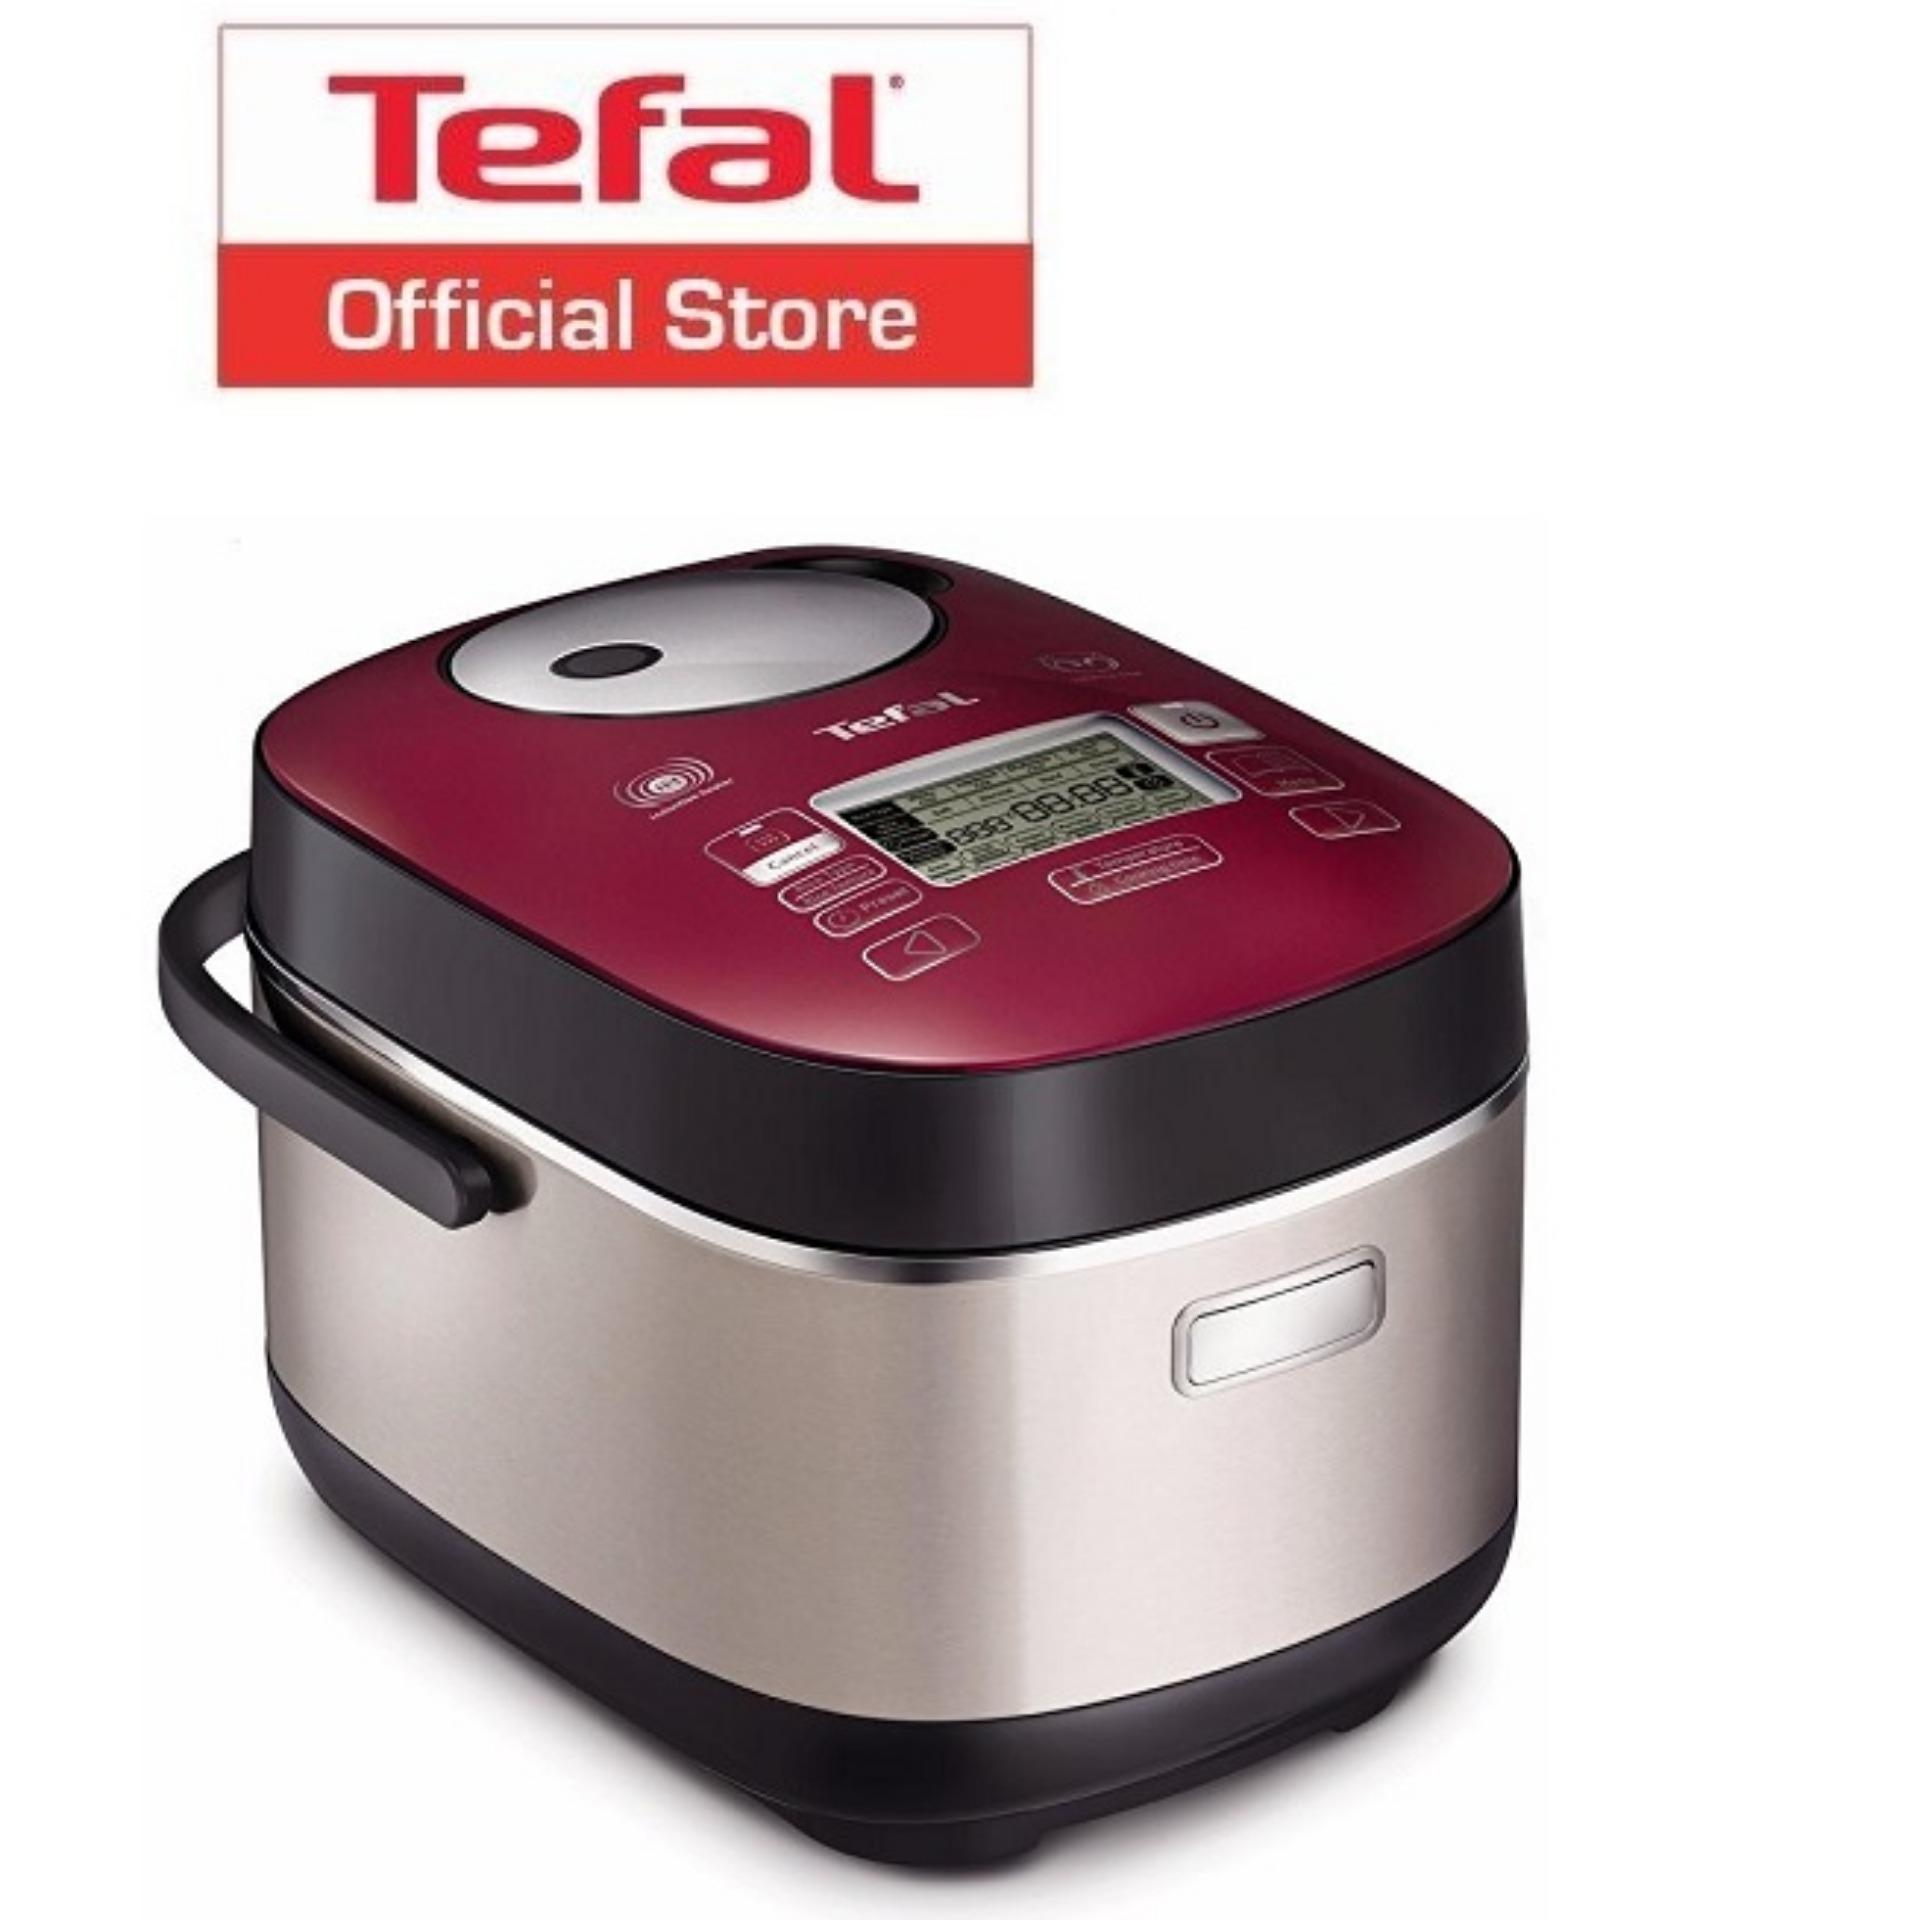 Buy Tefal Pro 48 Program Fuzzy Logic 3 D Induction Spherical Pot Rice Cooker 1 8L Rk8055 Tefal